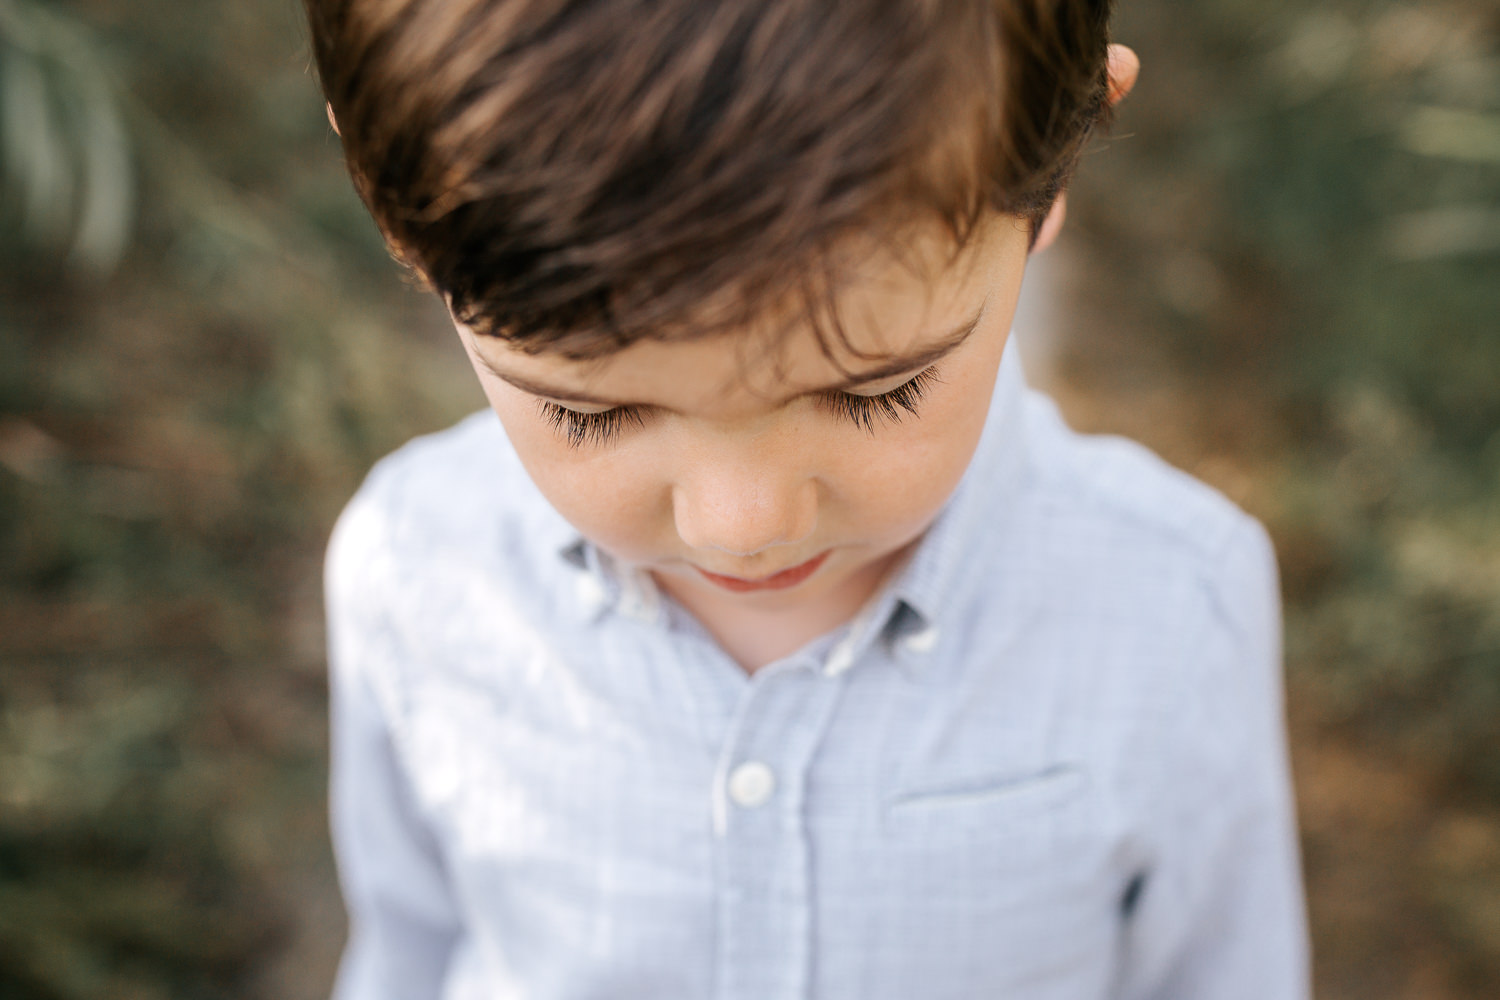 4 year old boy with dark hair and eyes wearing button down shirt standing on path looking down, close up of long eyelashes - Barrie In-Home Photos